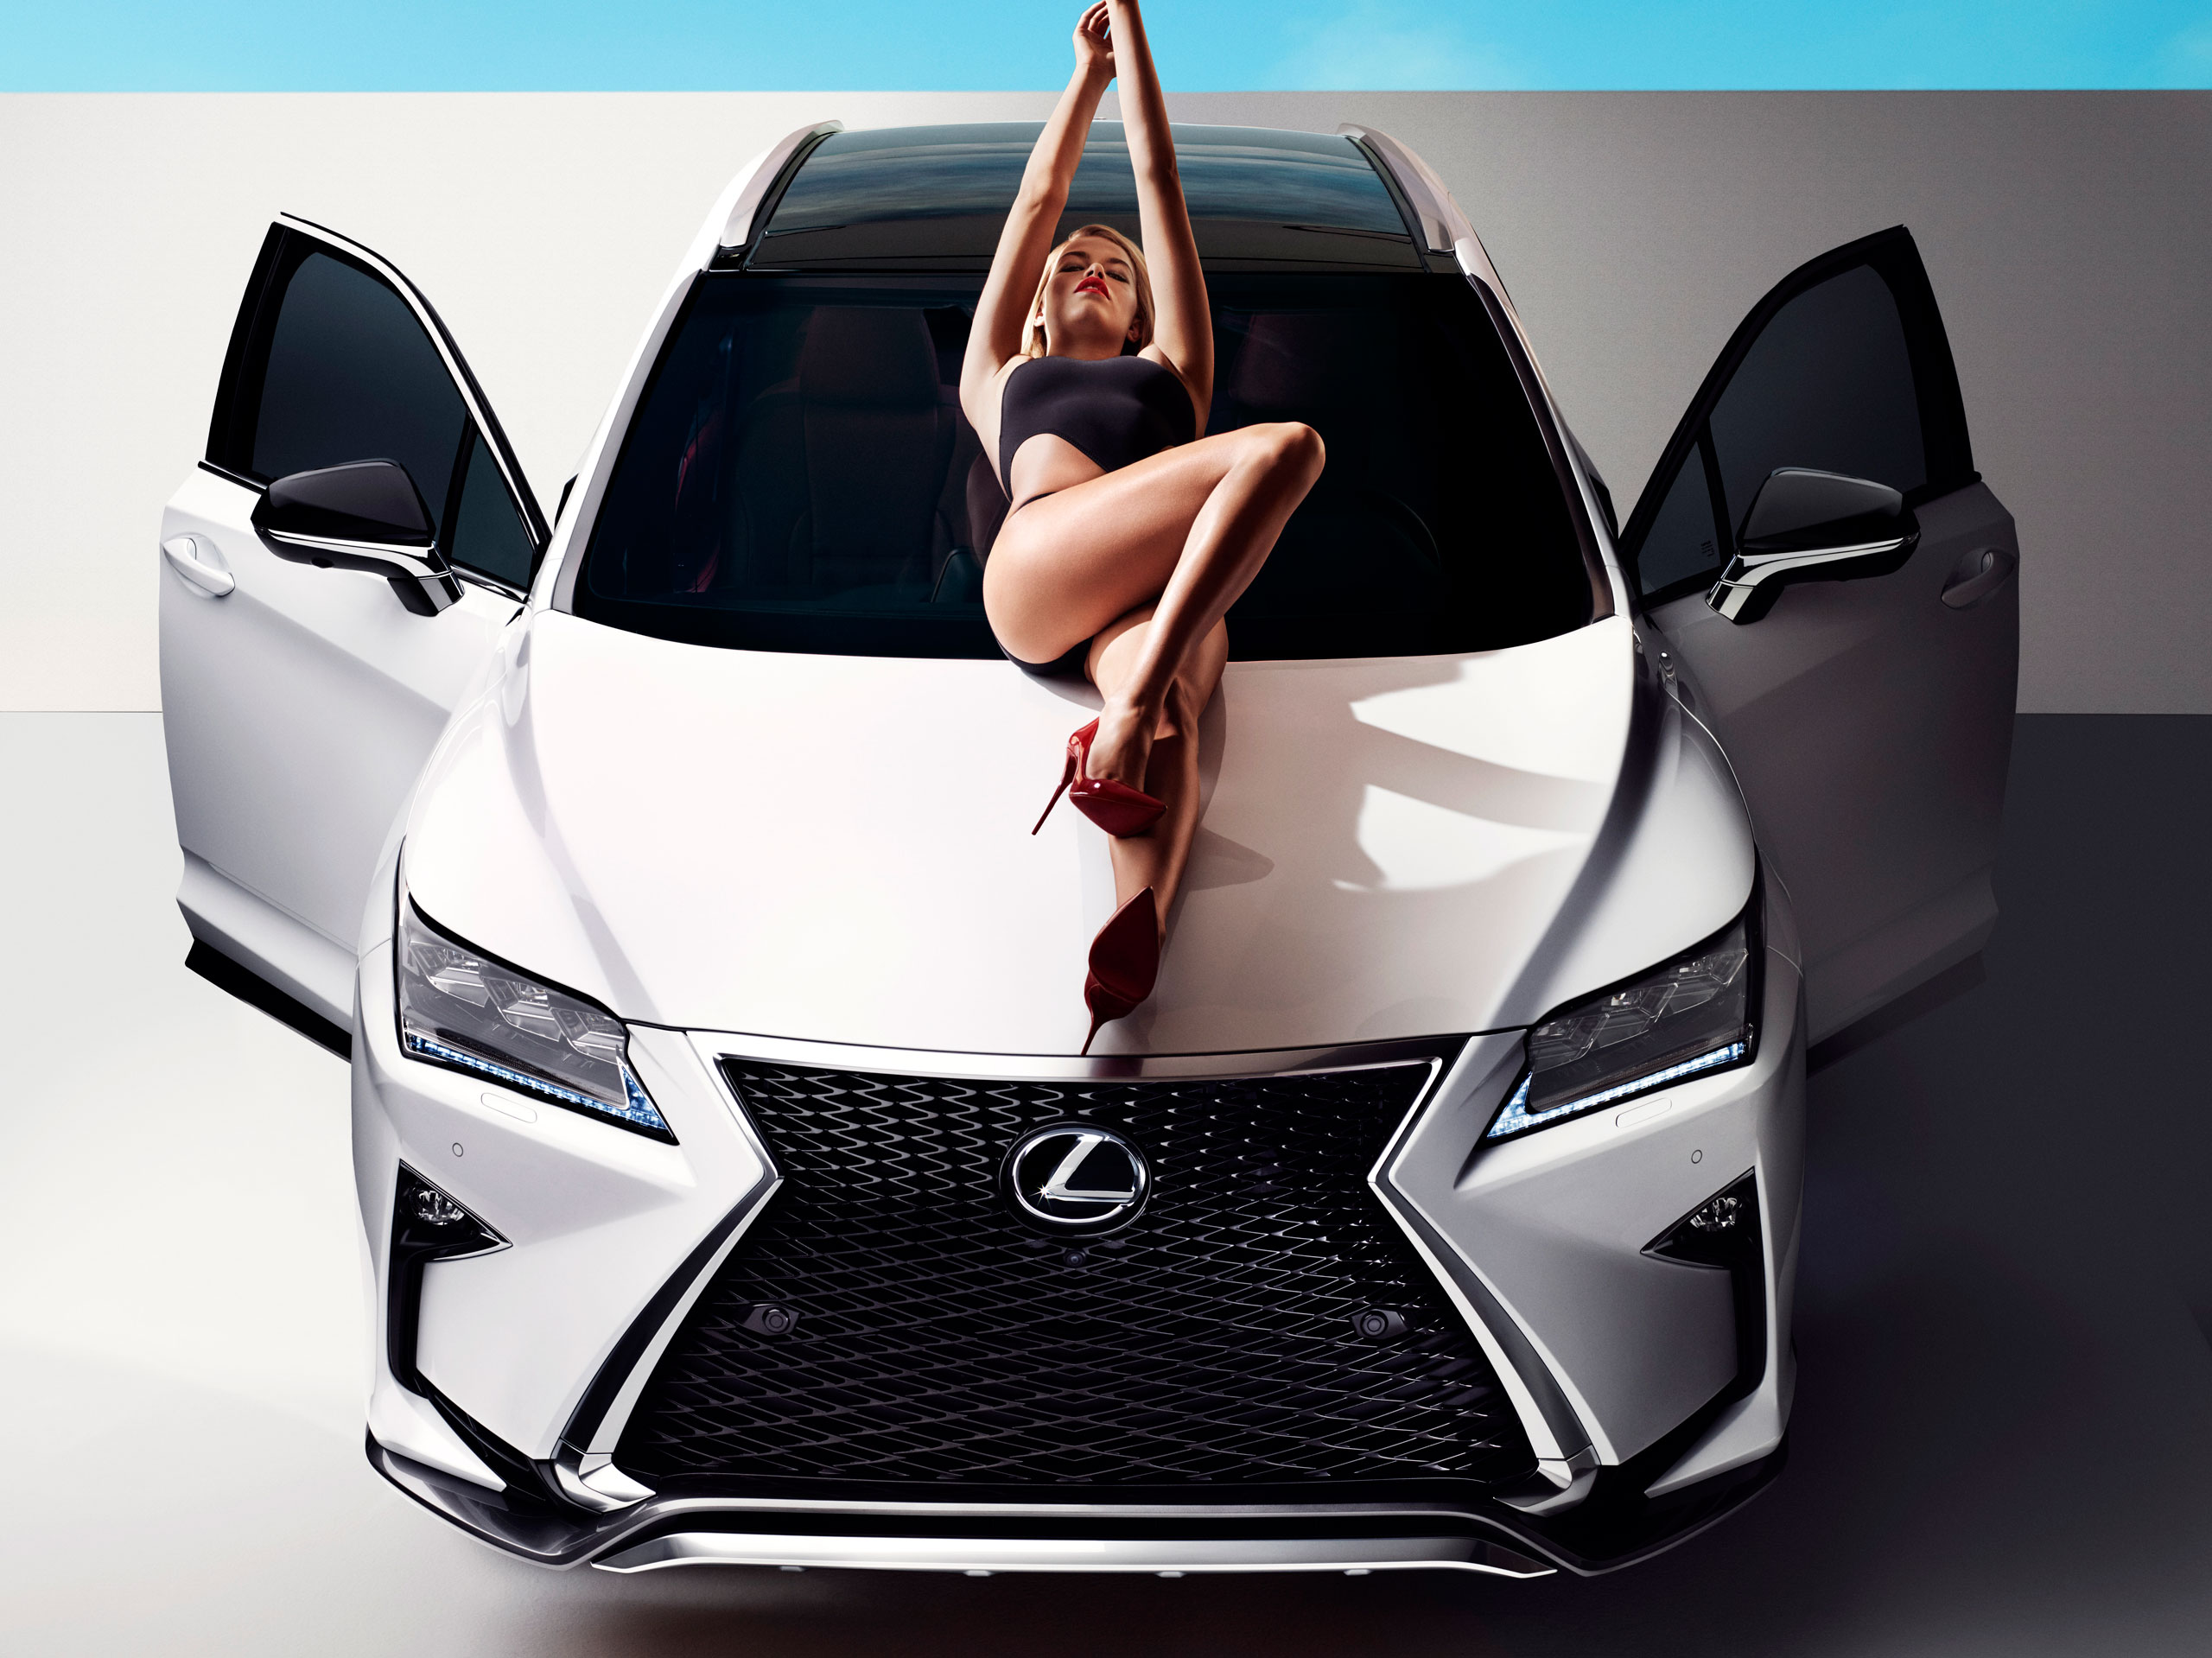 2016-lexus-rx-stars-in-sports-illustrated-shoot-with-hailey-clauson_6.jpg